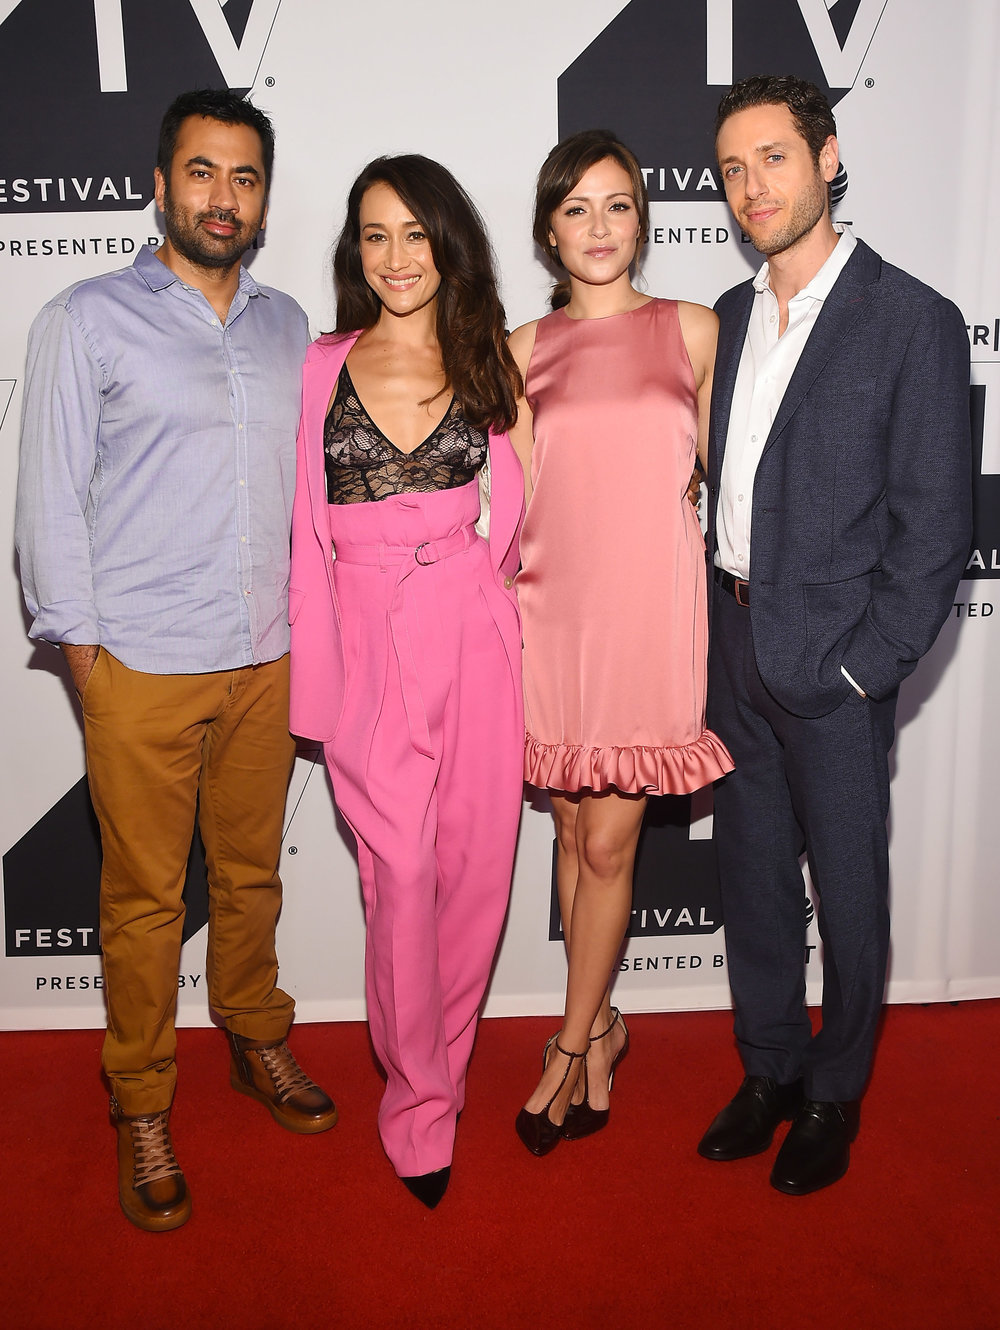 Kal Penn, Maggie Q, Italia Ricci and Paulo Costanzo attend the Tribeca TV Festival season premiere of Designated Survivor at Cinepolis Chelsea on September 24, 2017 in New York City. (Photo by Ben GabbeGetty Imag.jpg